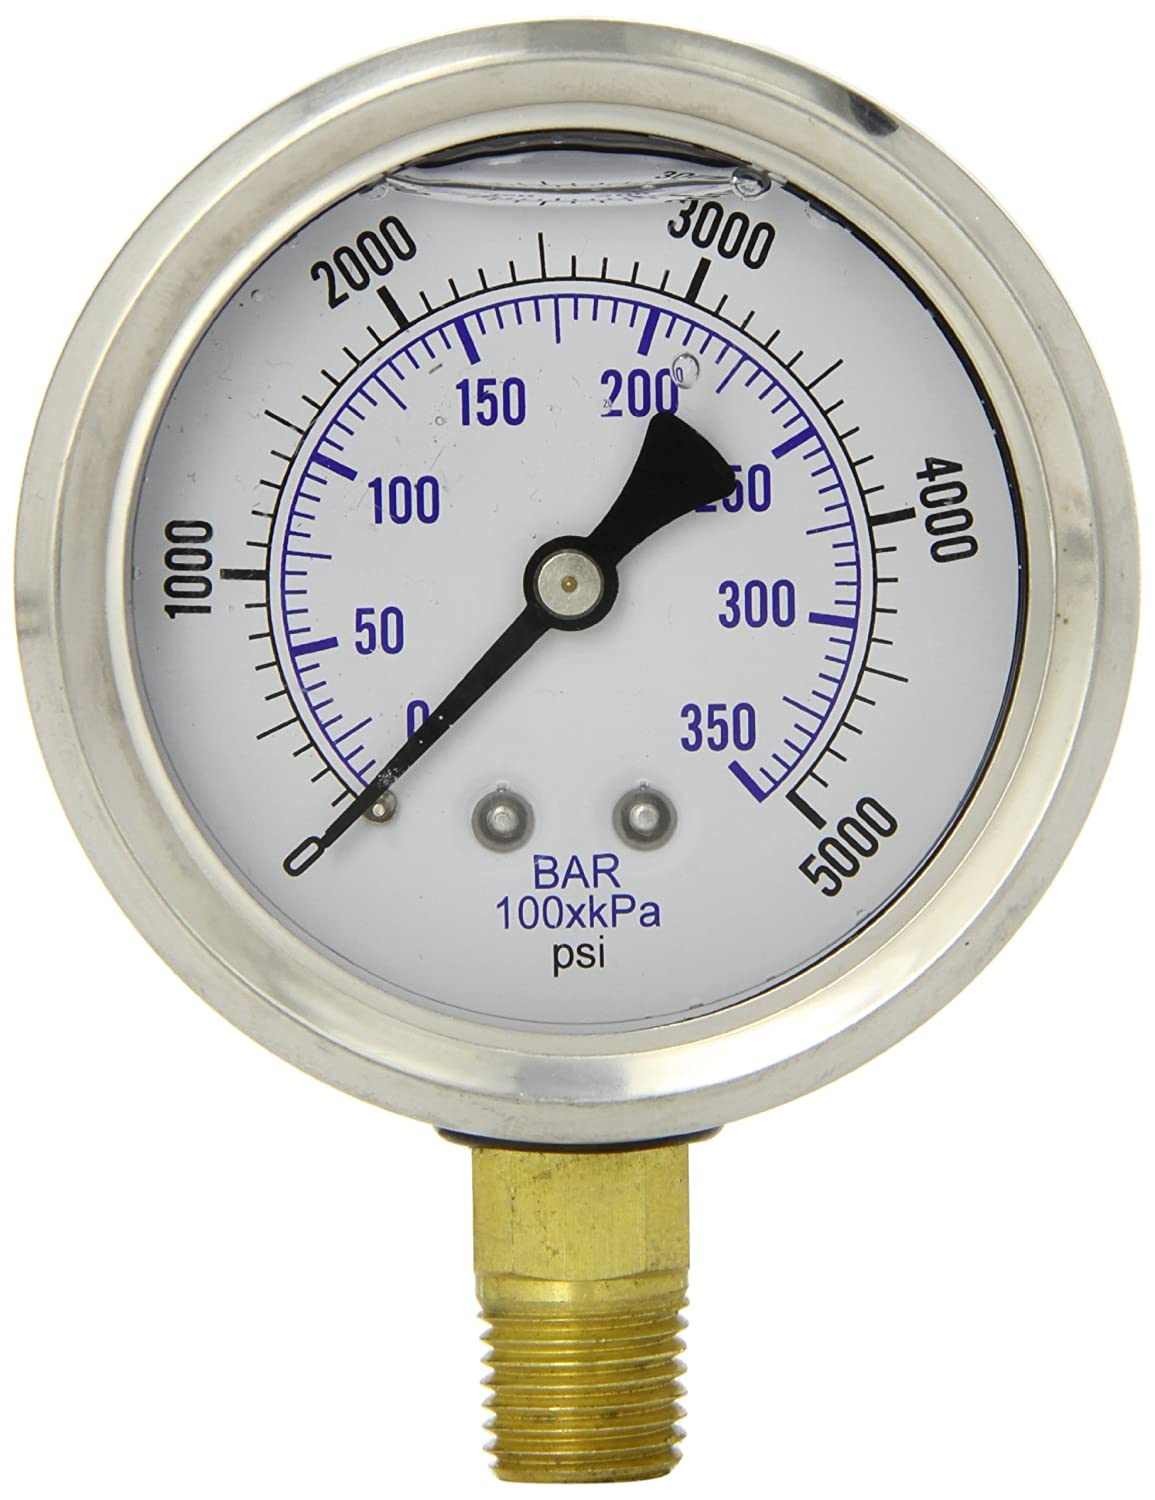 PIC Gauge PRO 201L 254R Glycerin Filled Industrial Bottom Mount Pressure Gauge with Stainless Steel Case Brass Internals Plastic Lens 2 1 2 Dial Size 1 4 Male NPT 0 5000 psi